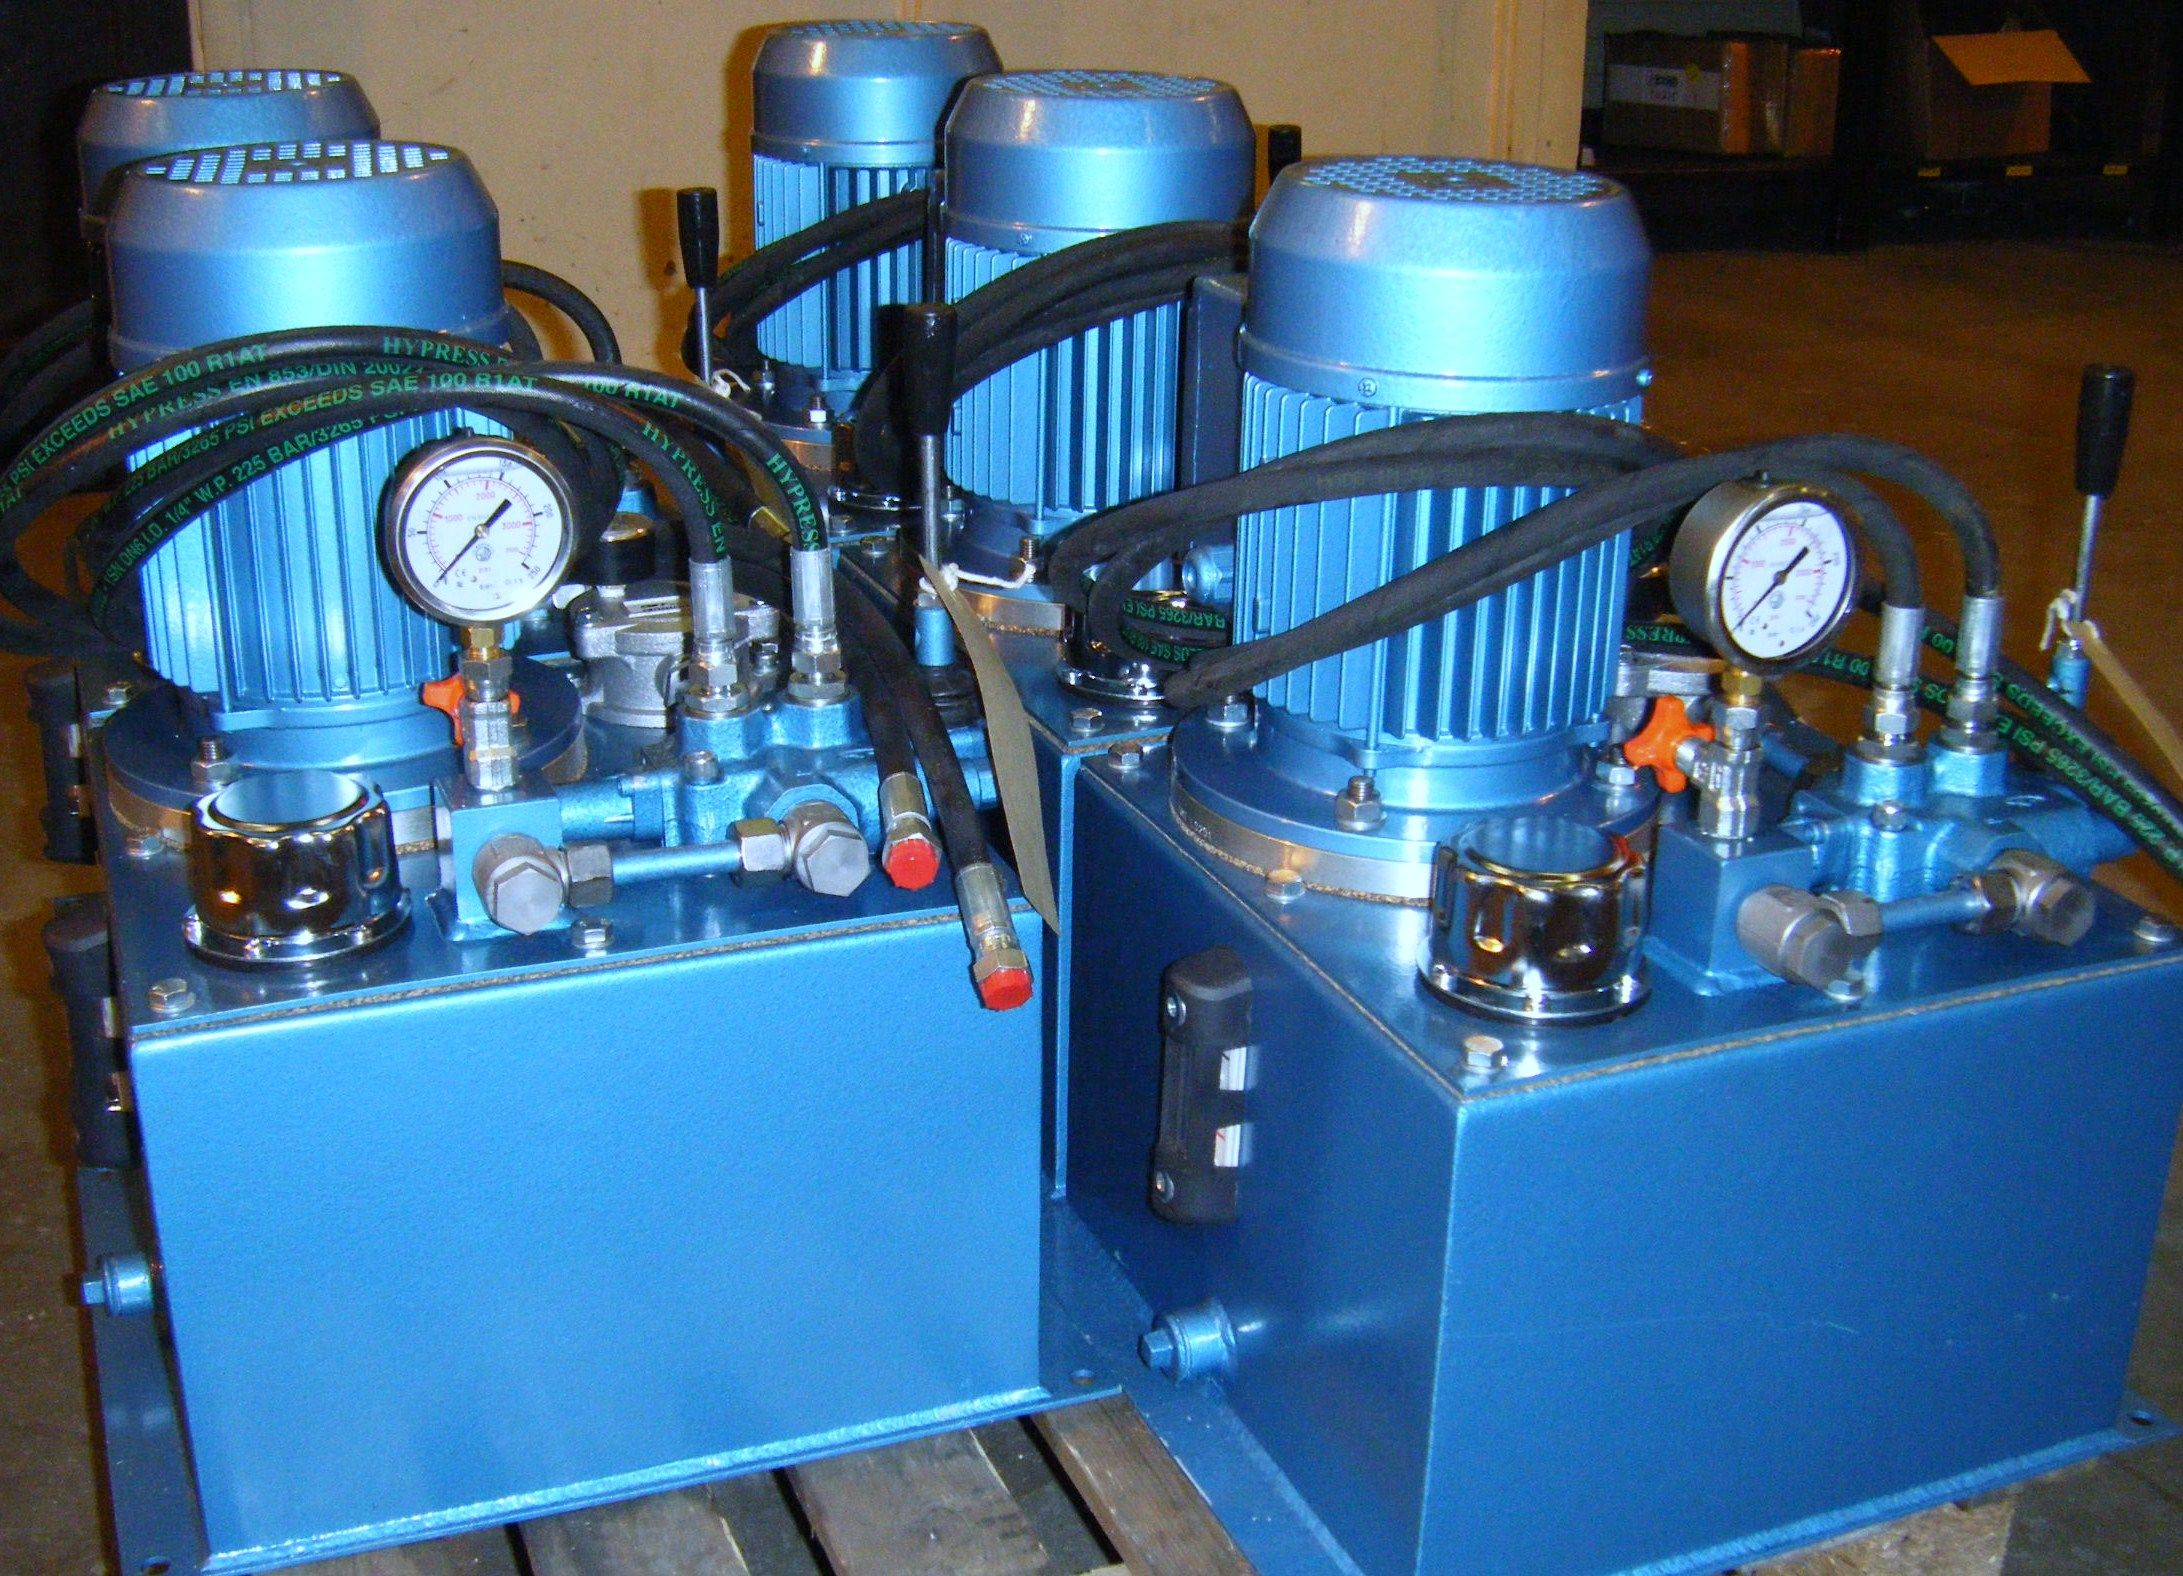 Five UHL PPS13 single phase hydraulic power packs designed, built , tested and ready to go. Each utilizing a Casappa pump, OMT suction & return line filters, OMT bell housing & drive coupling and a Walvoil directional hand lever control.  Call 01246 451711 to find out more about hydraulic power packs.